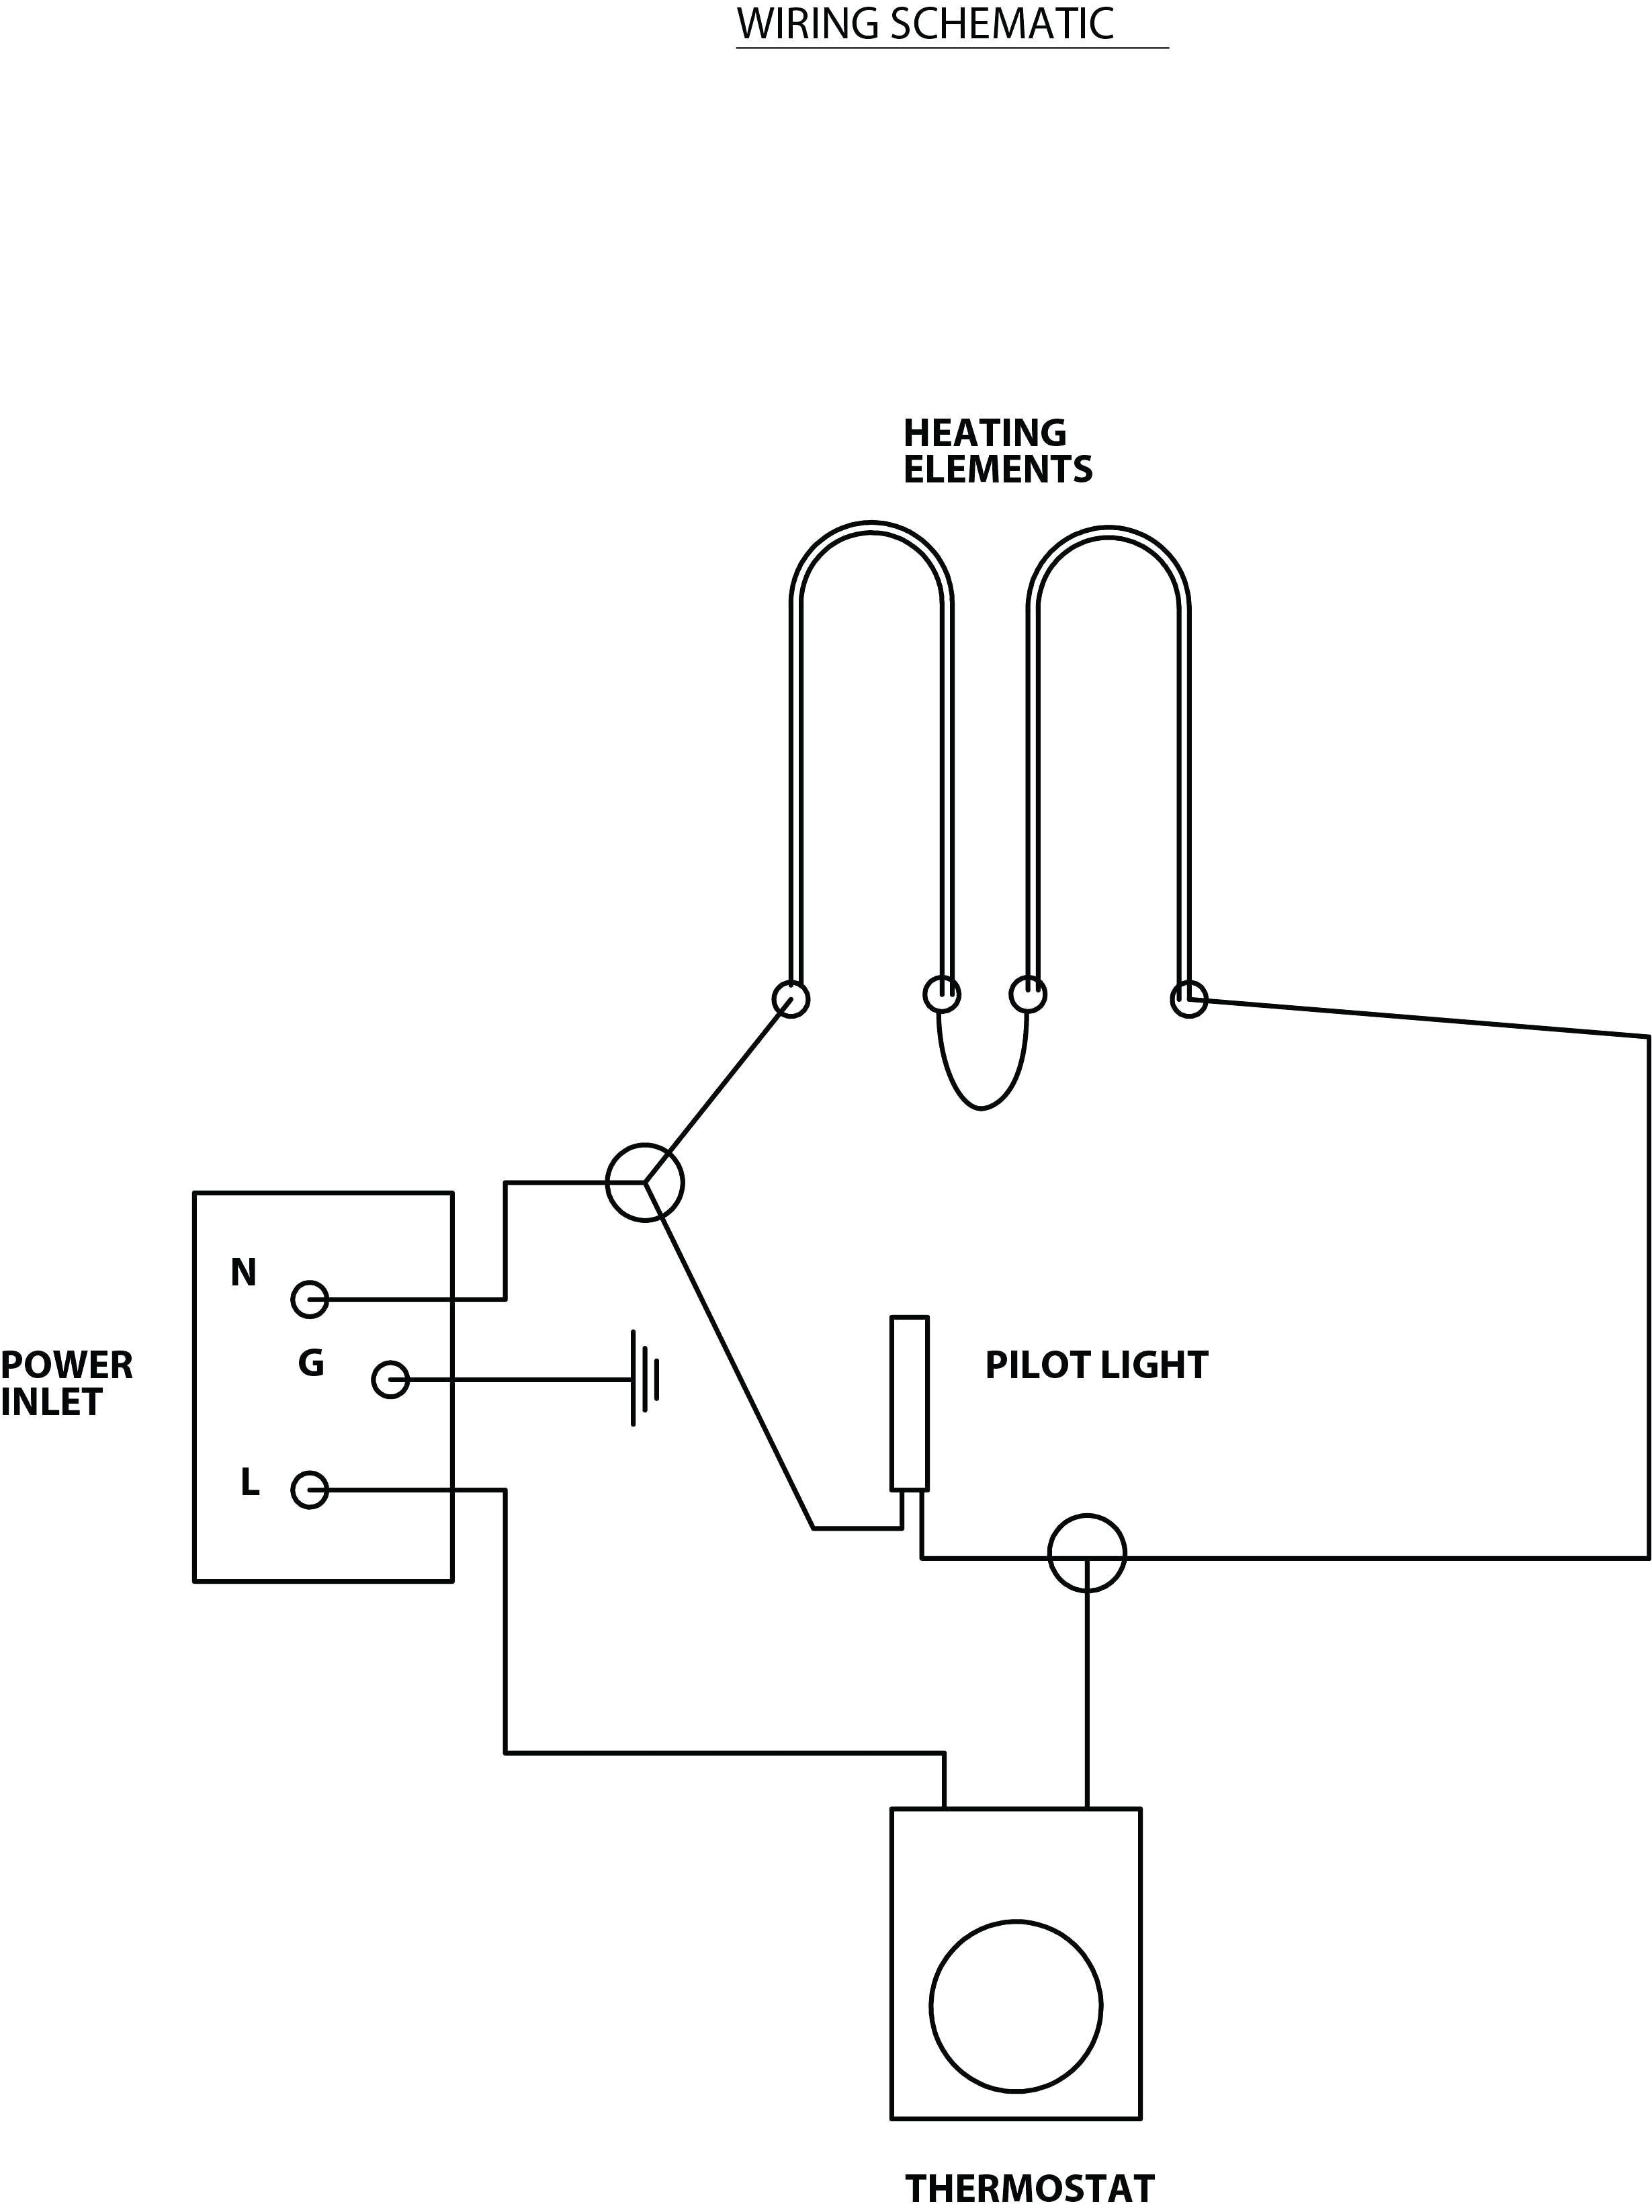 ssr schematic ge proteus electrical schematic wiring diagram ssr schematic ge proteus